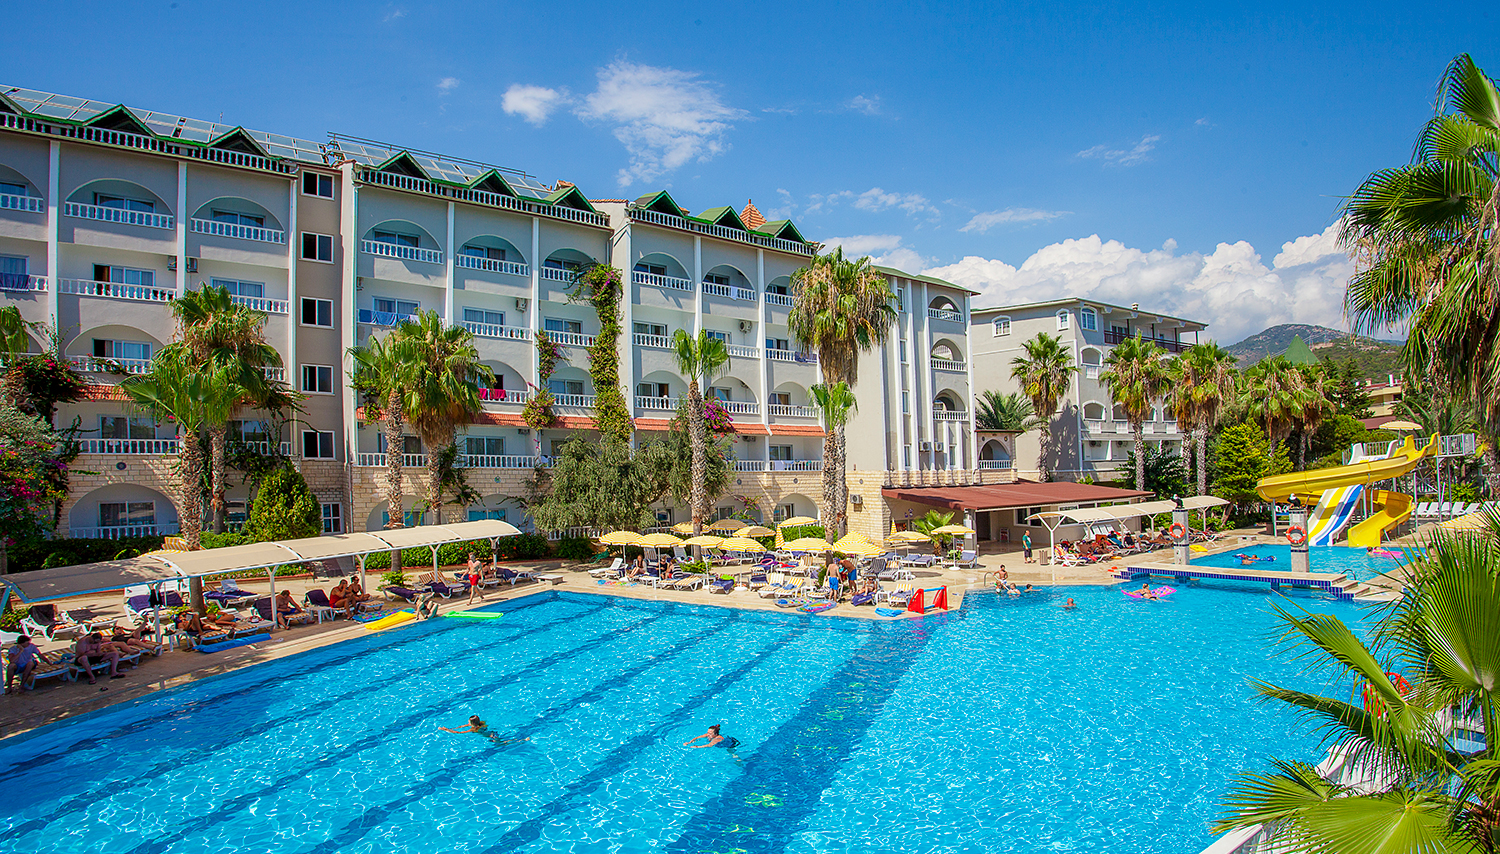 Kemal Bay Resort hotell (Antalya, Türgi)